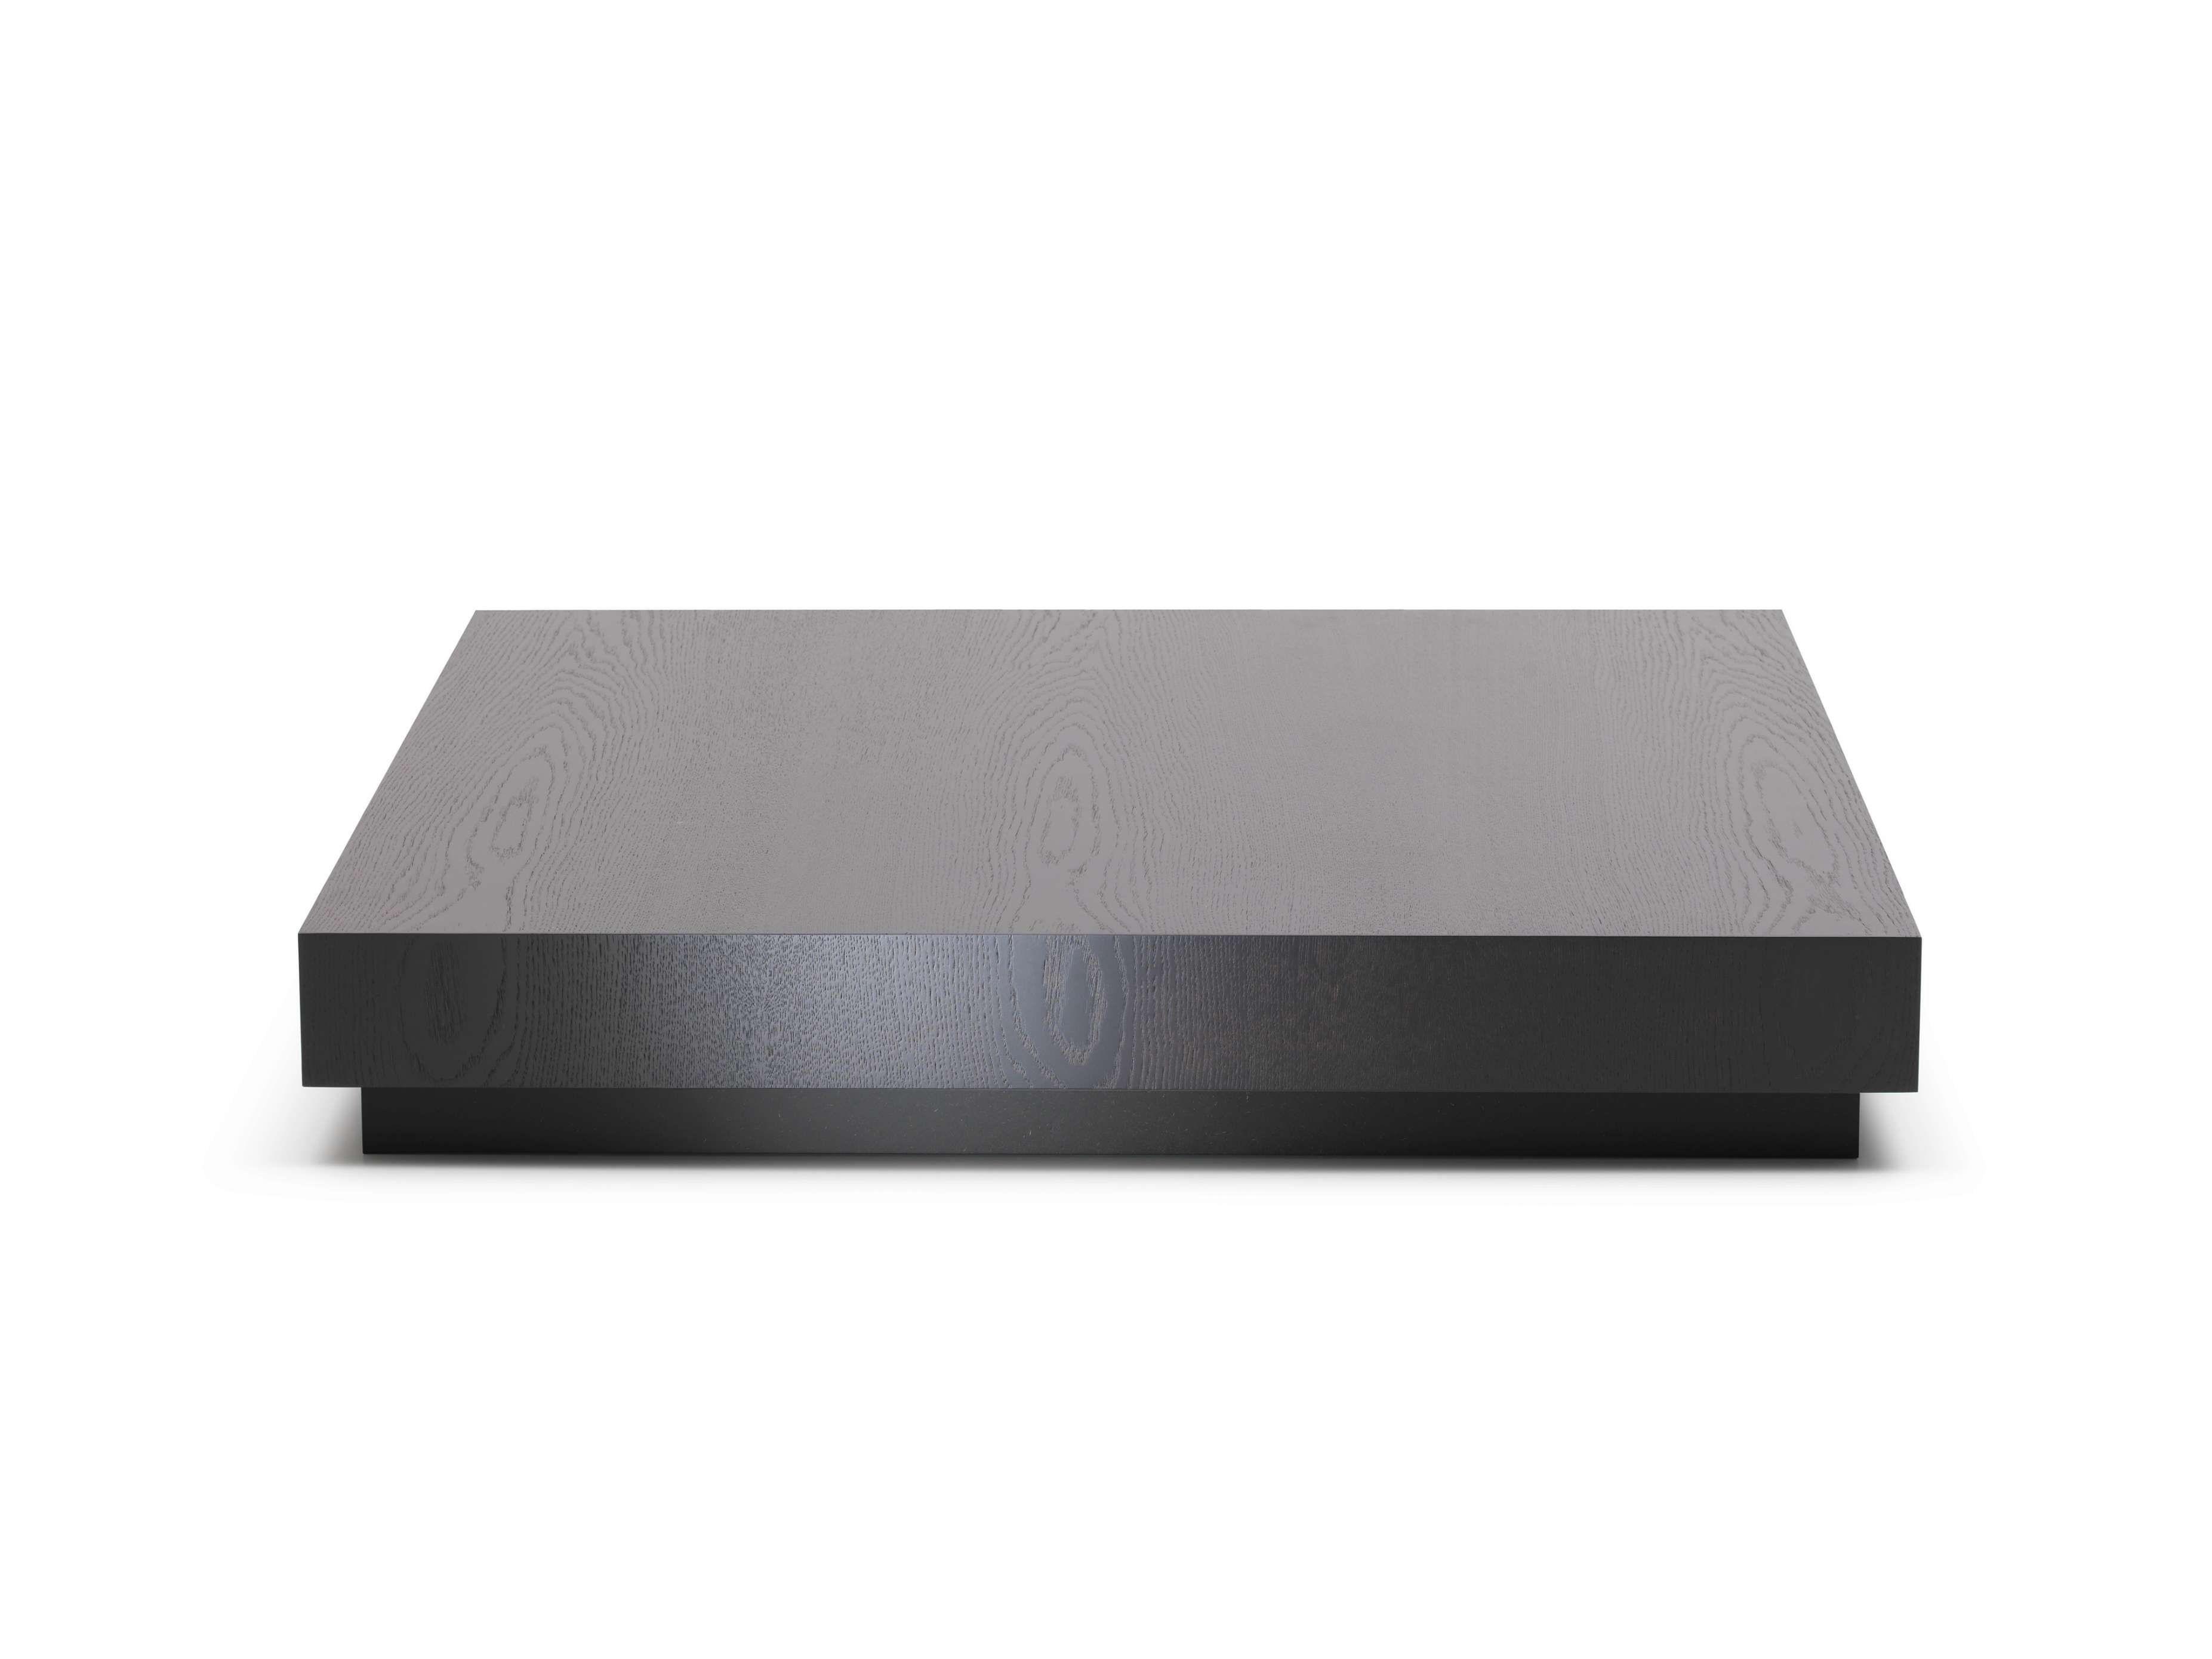 Square Wood Low Profile Coffee Table Painted With Black Color For Pertaining To Favorite Square Low Coffee Tables (View 18 of 20)